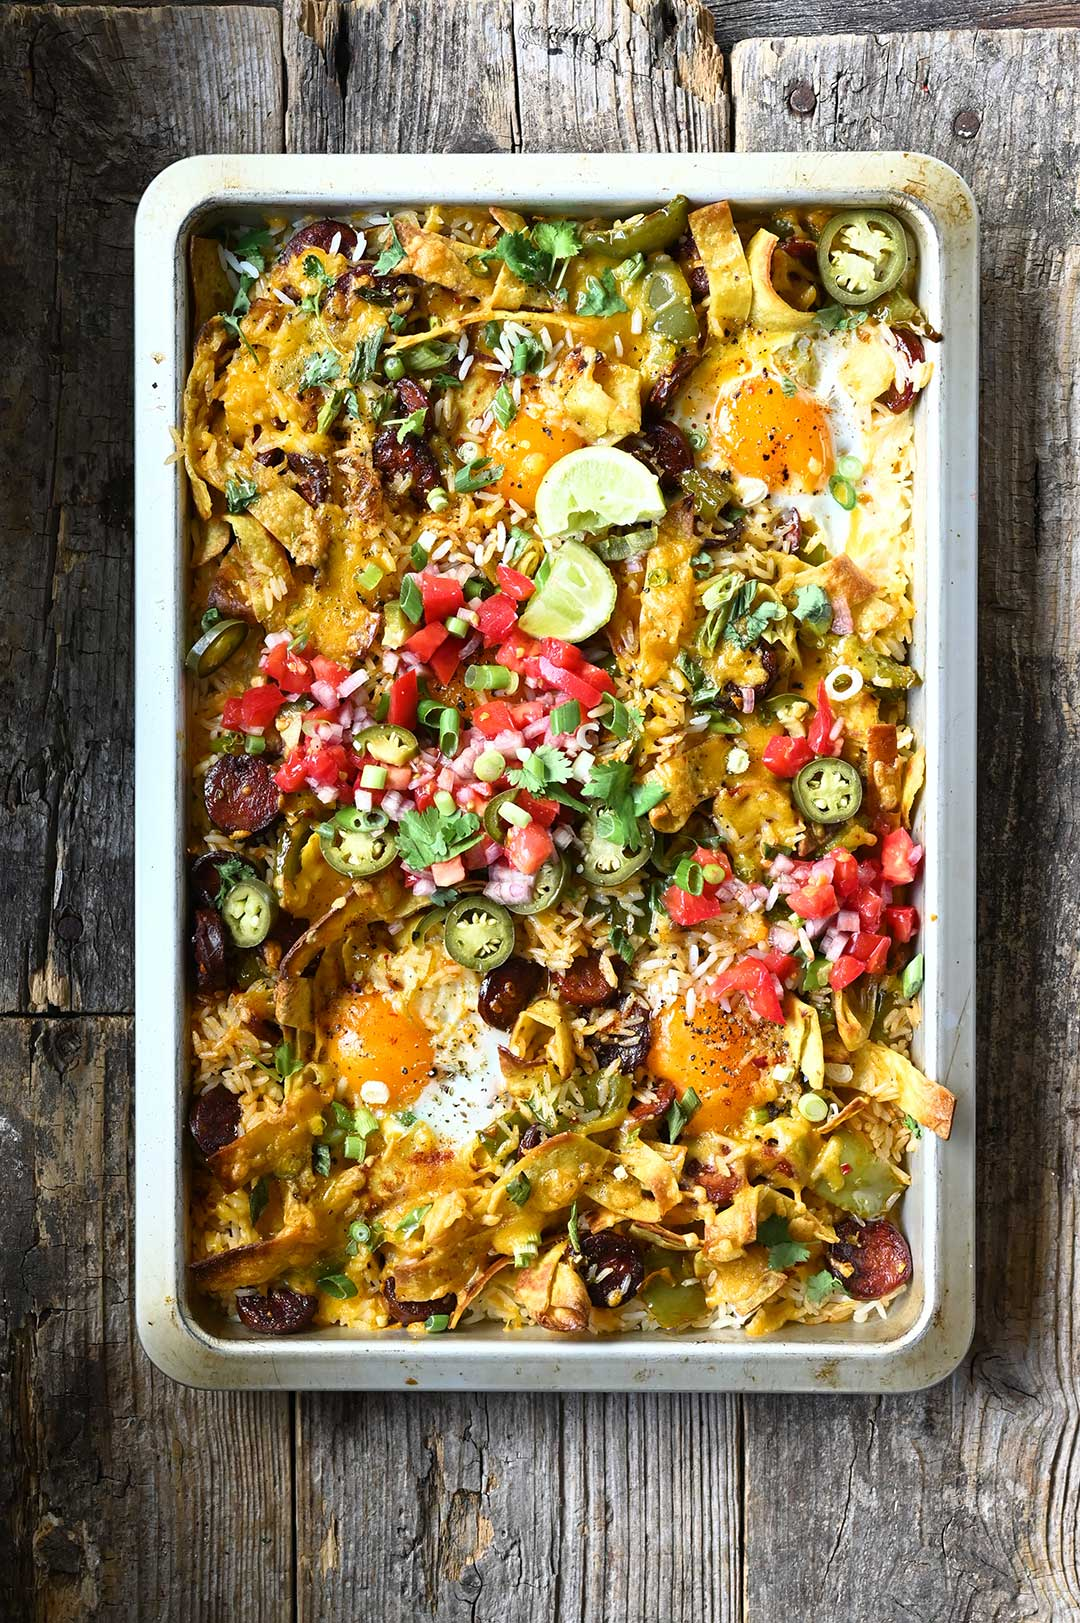 serving dumplings | Mexican Rice Bake with Chorizo and Eggs